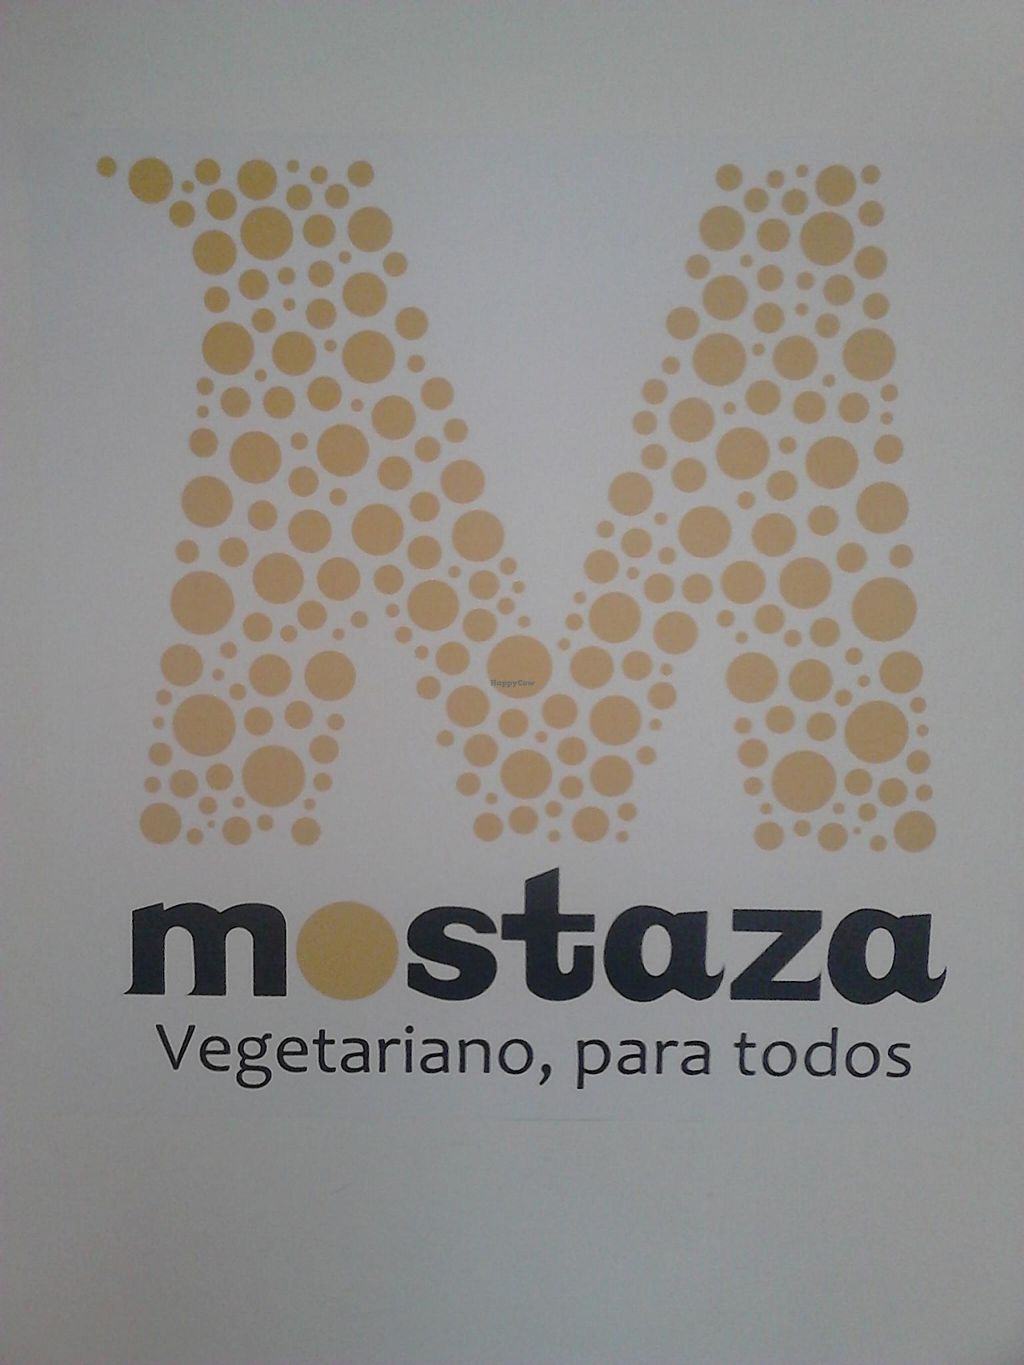 """Photo of Mostaza  by <a href=""""/members/profile/williampv"""">williampv</a> <br/>Logo <br/> April 6, 2016  - <a href='/contact/abuse/image/71822/143135'>Report</a>"""